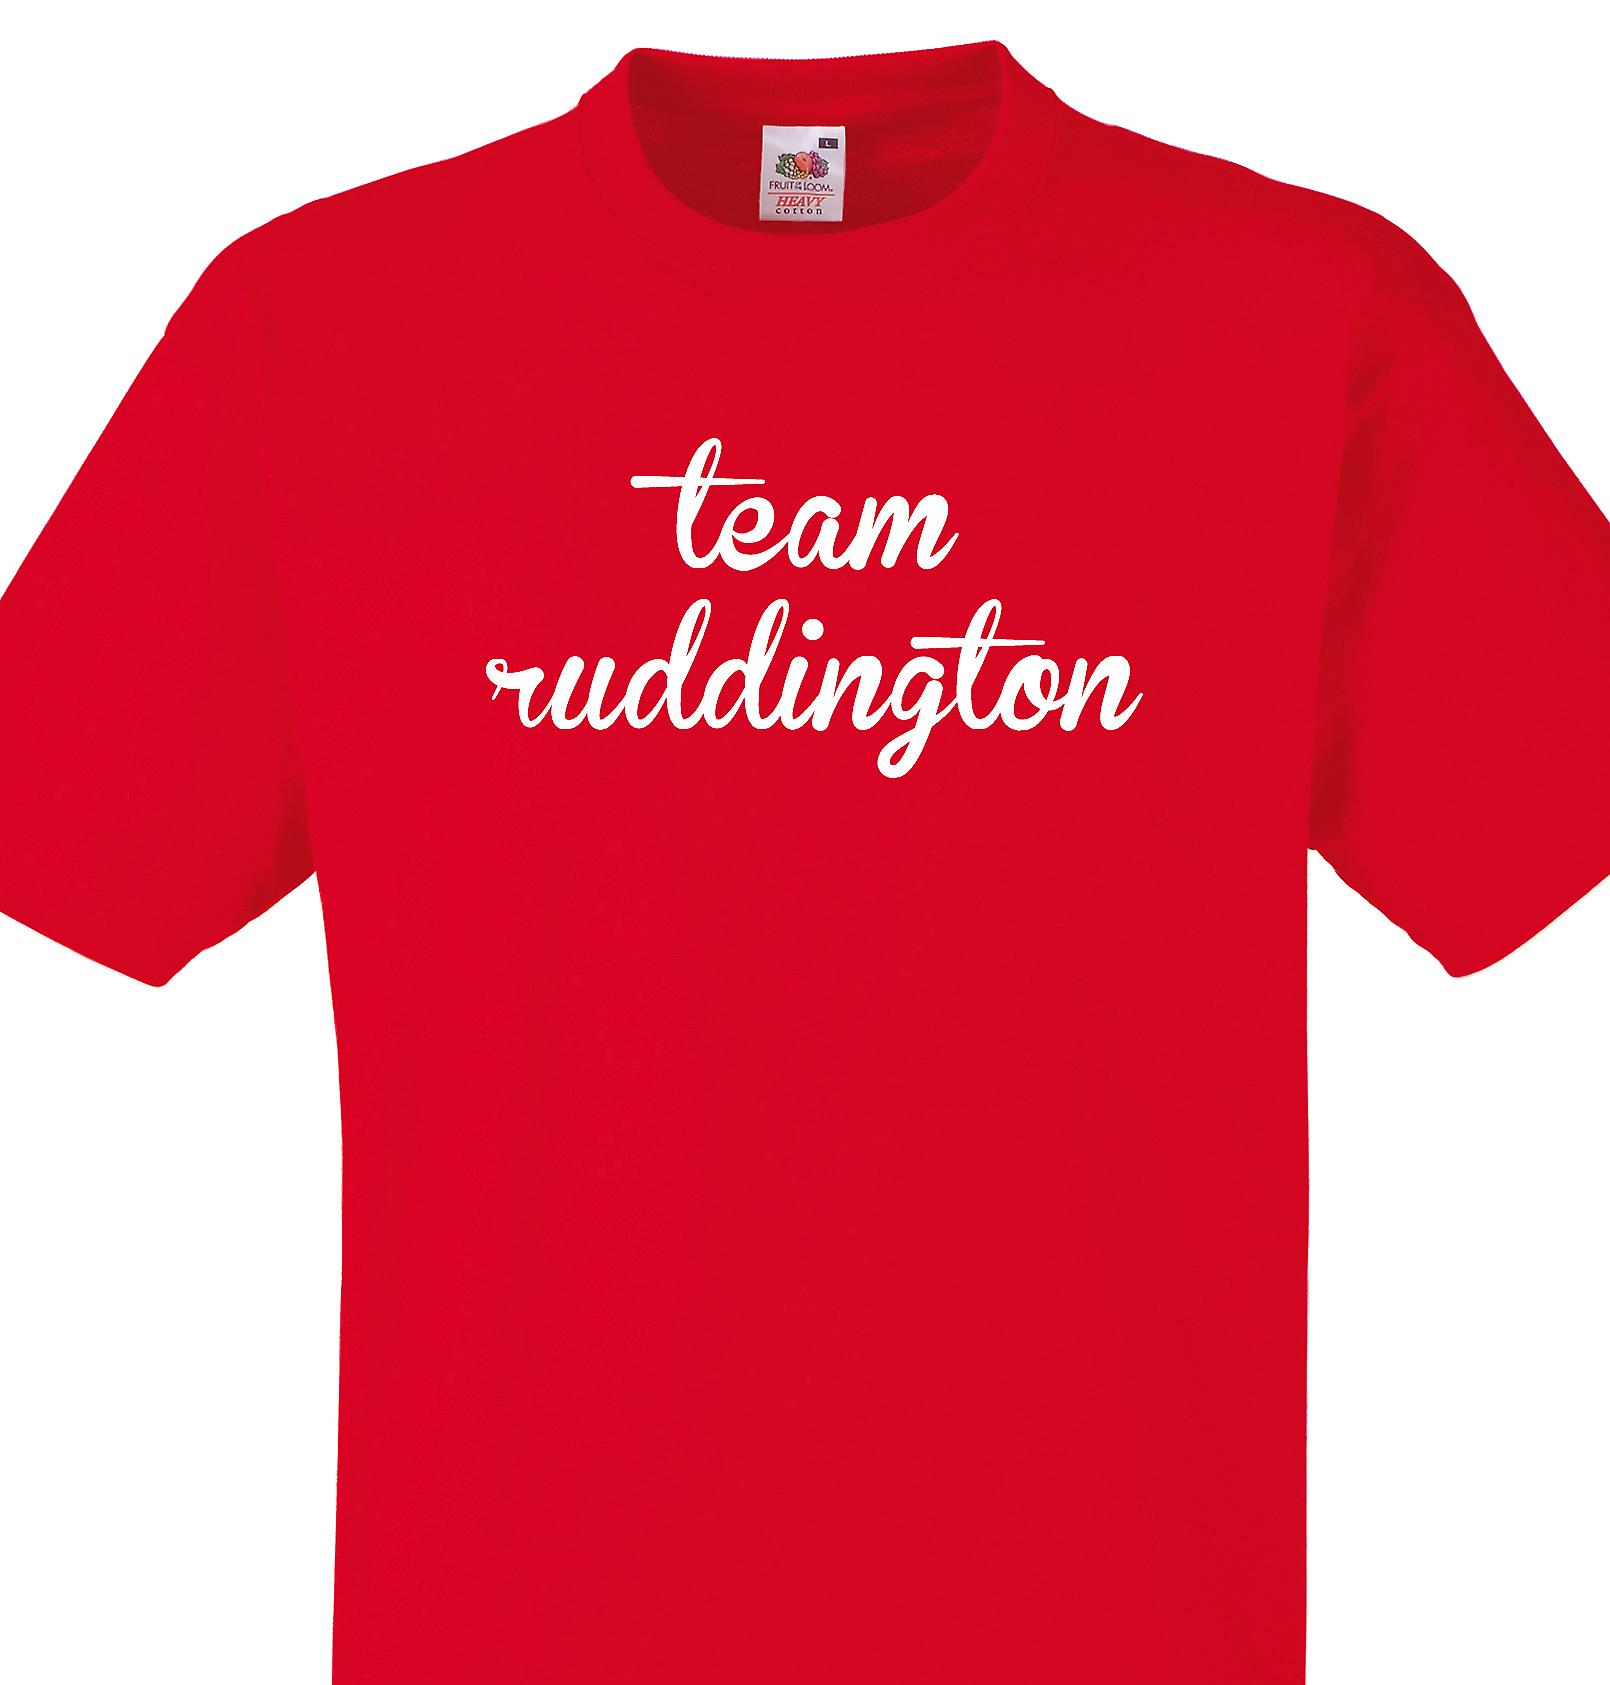 Team Ruddington Red T shirt